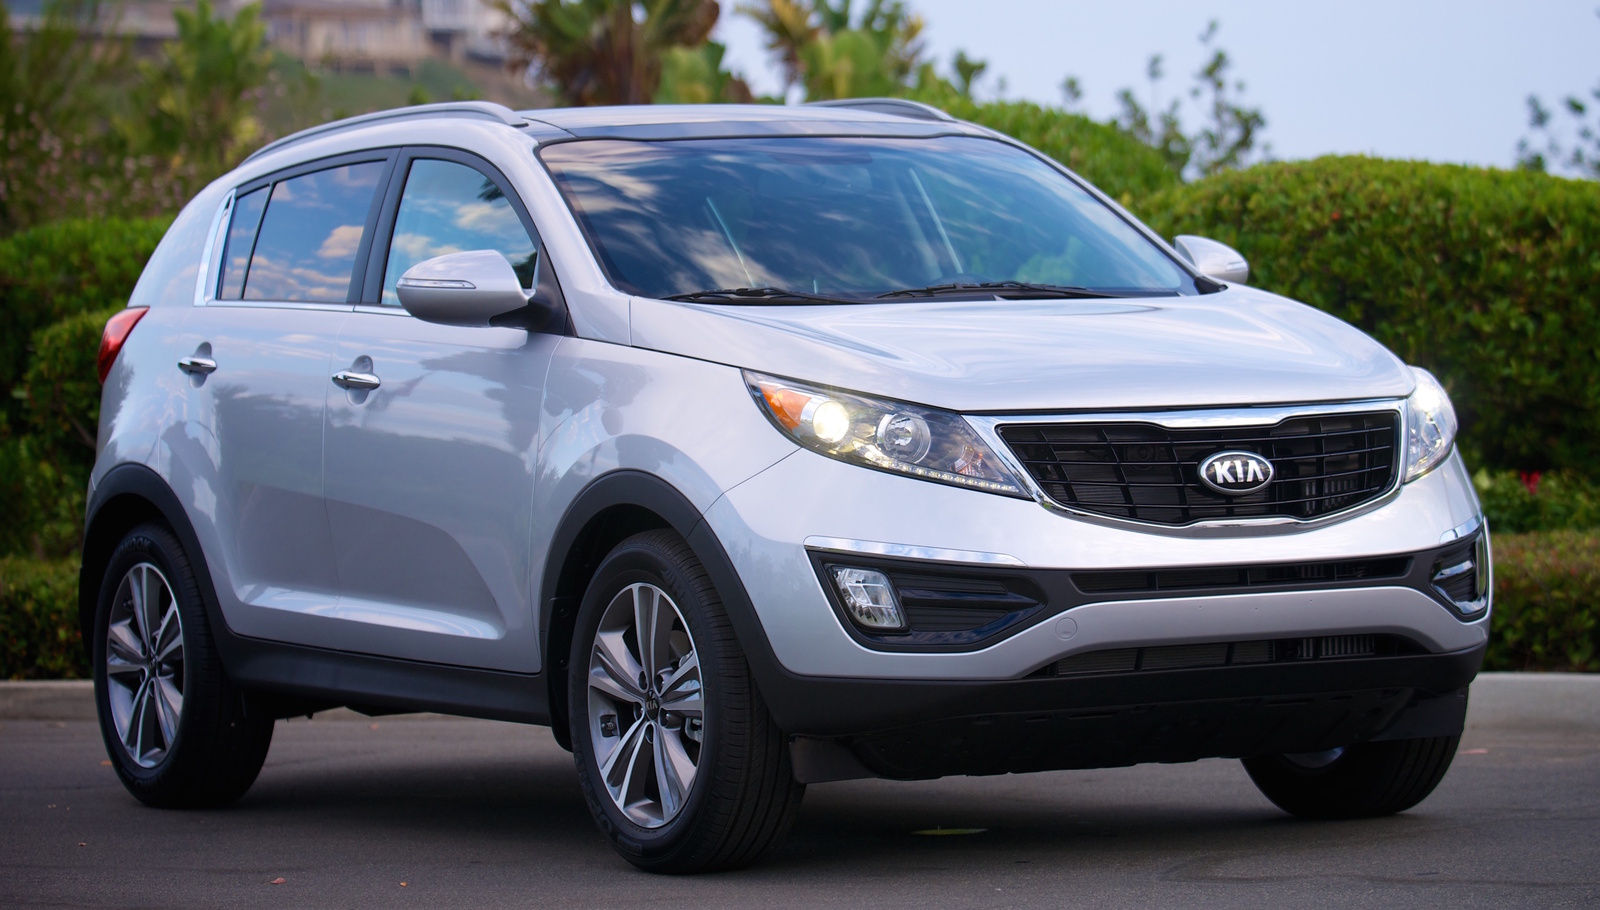 2016 kia sportage review cargurus. Black Bedroom Furniture Sets. Home Design Ideas